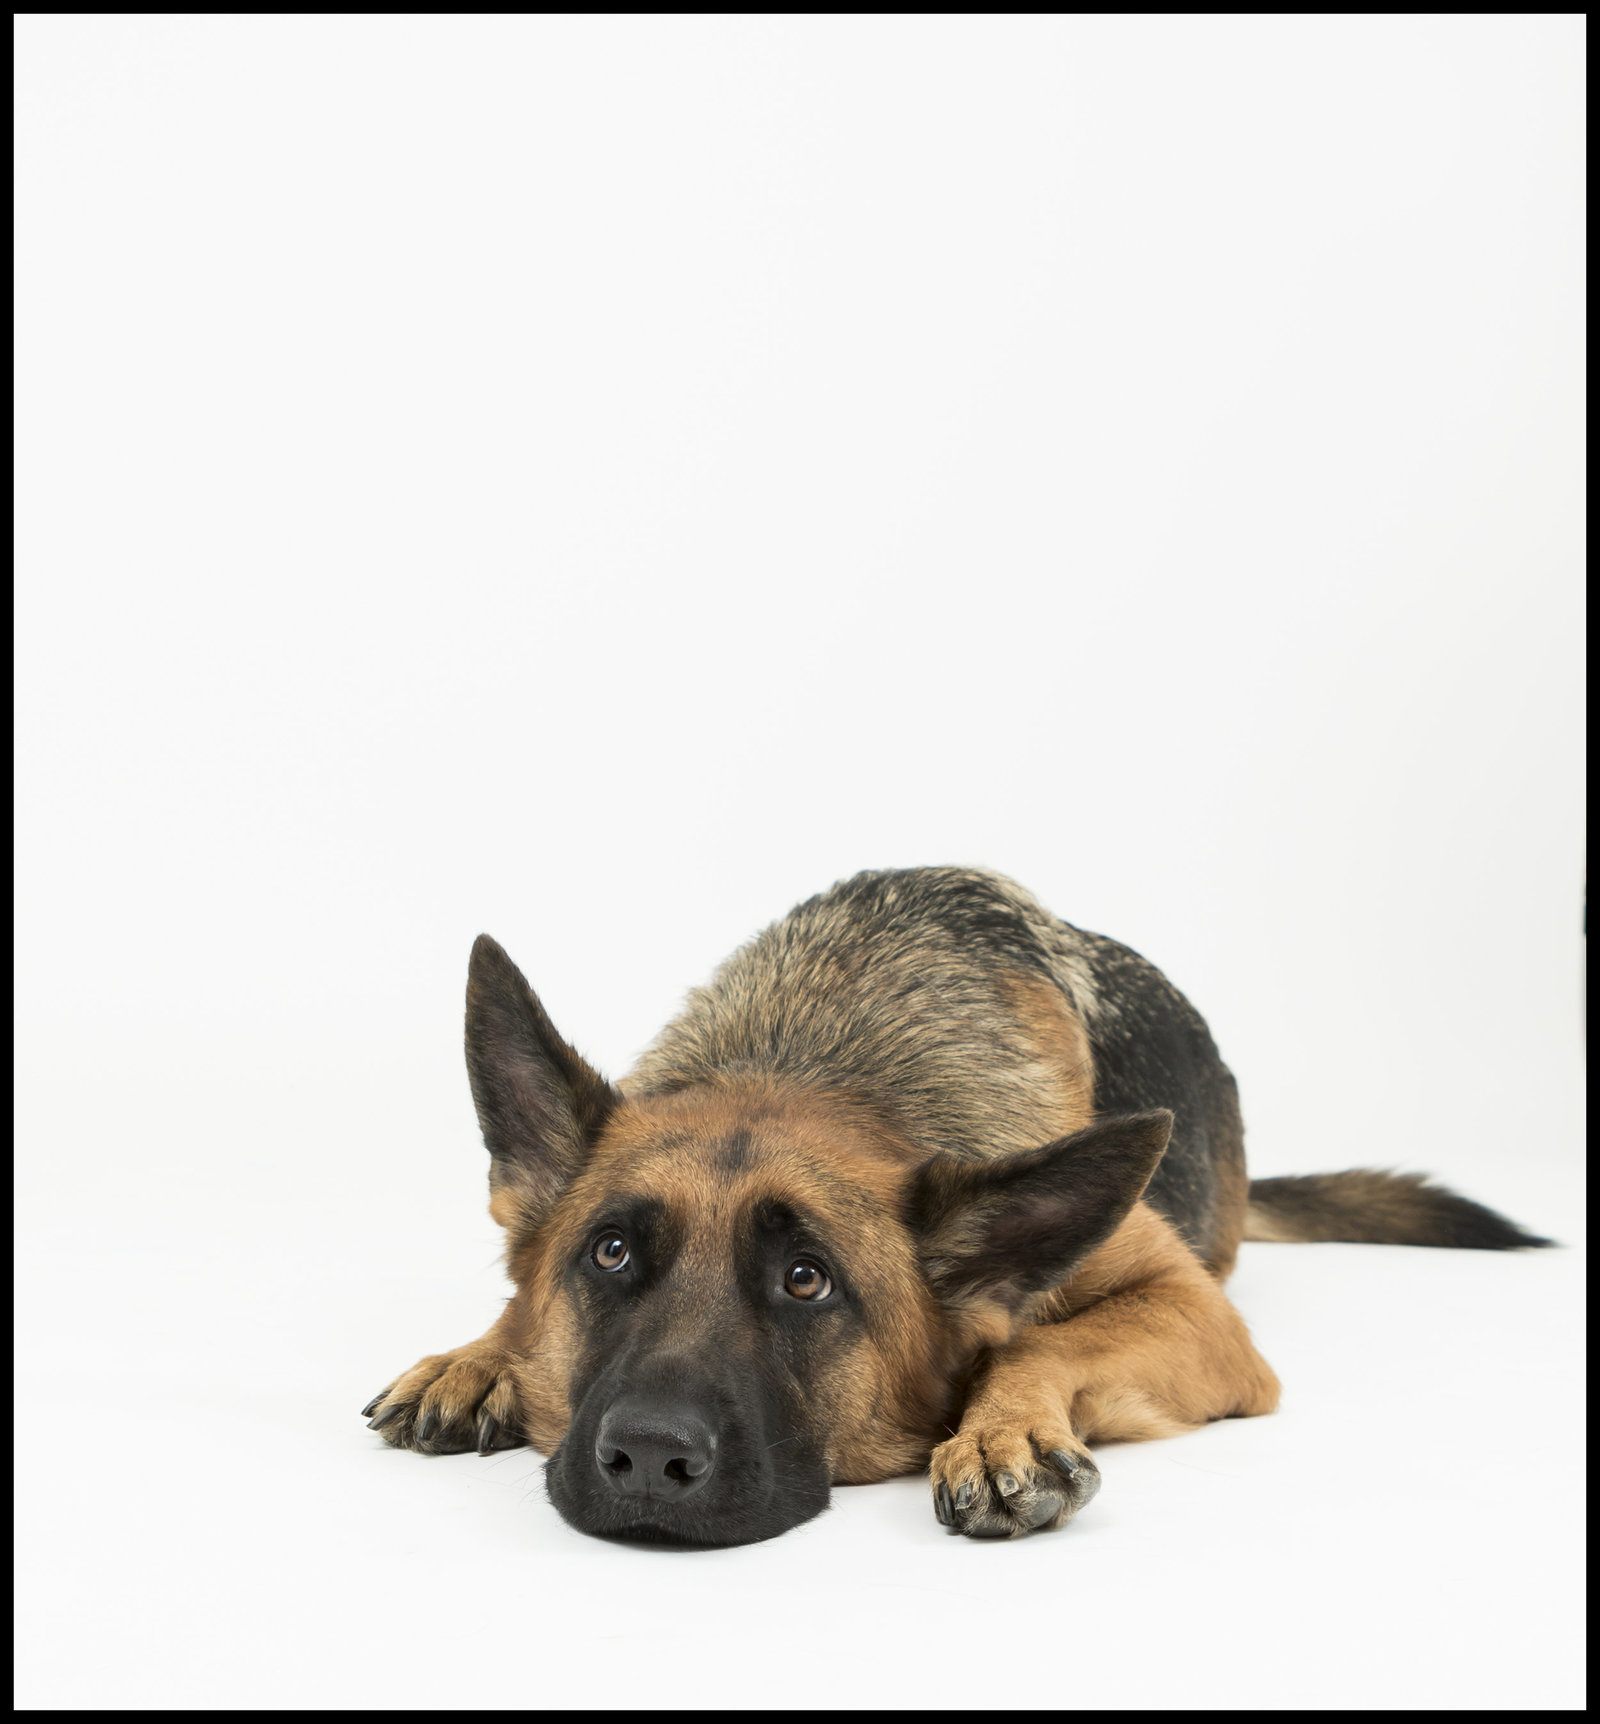 German shepherd studio picture